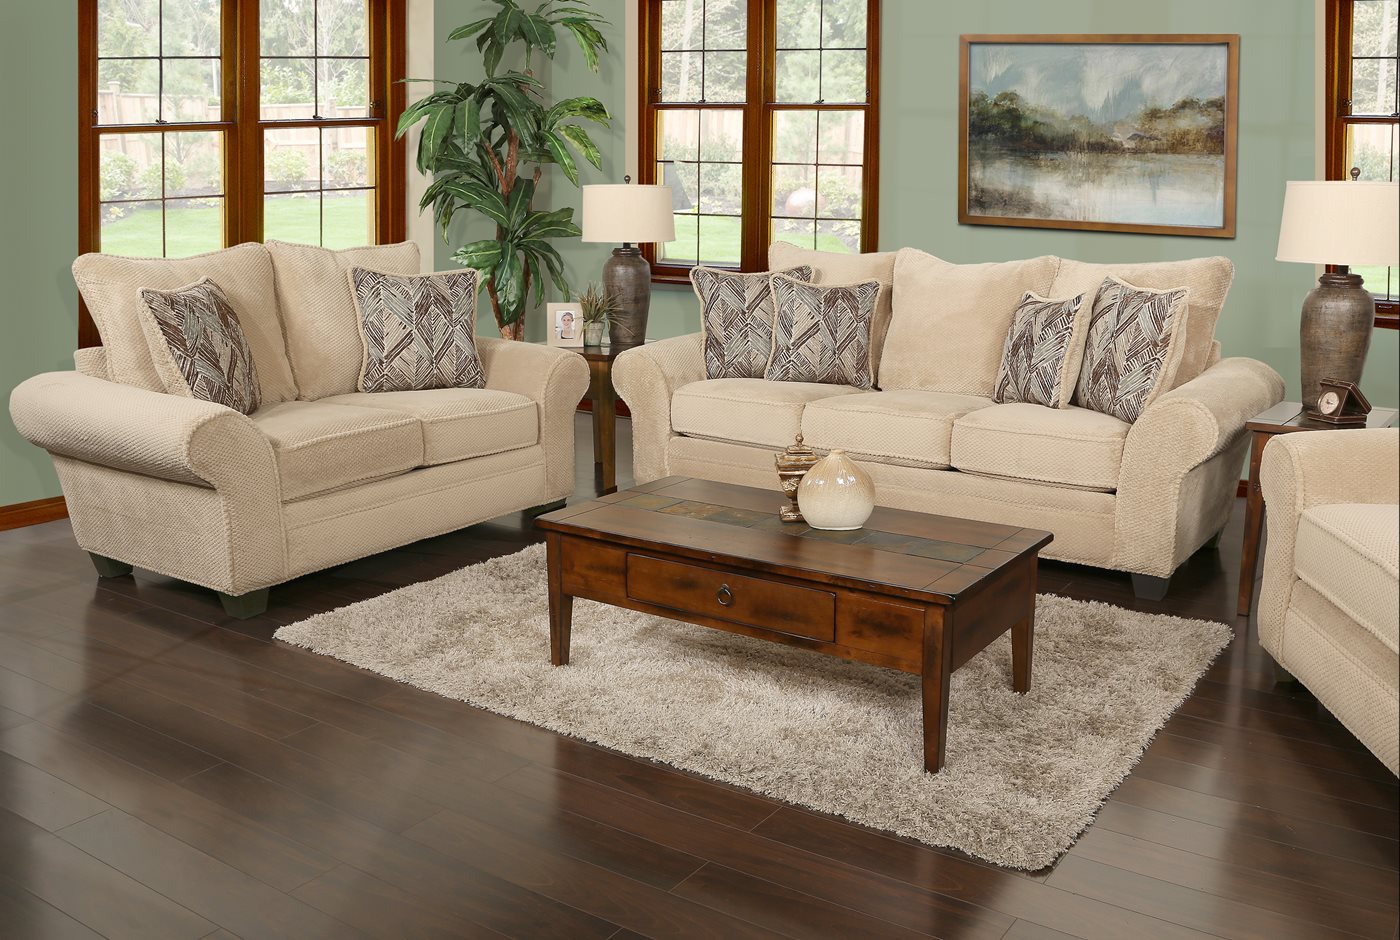 Trinidad sand sofa and loveseat for Living room furniture trinidad